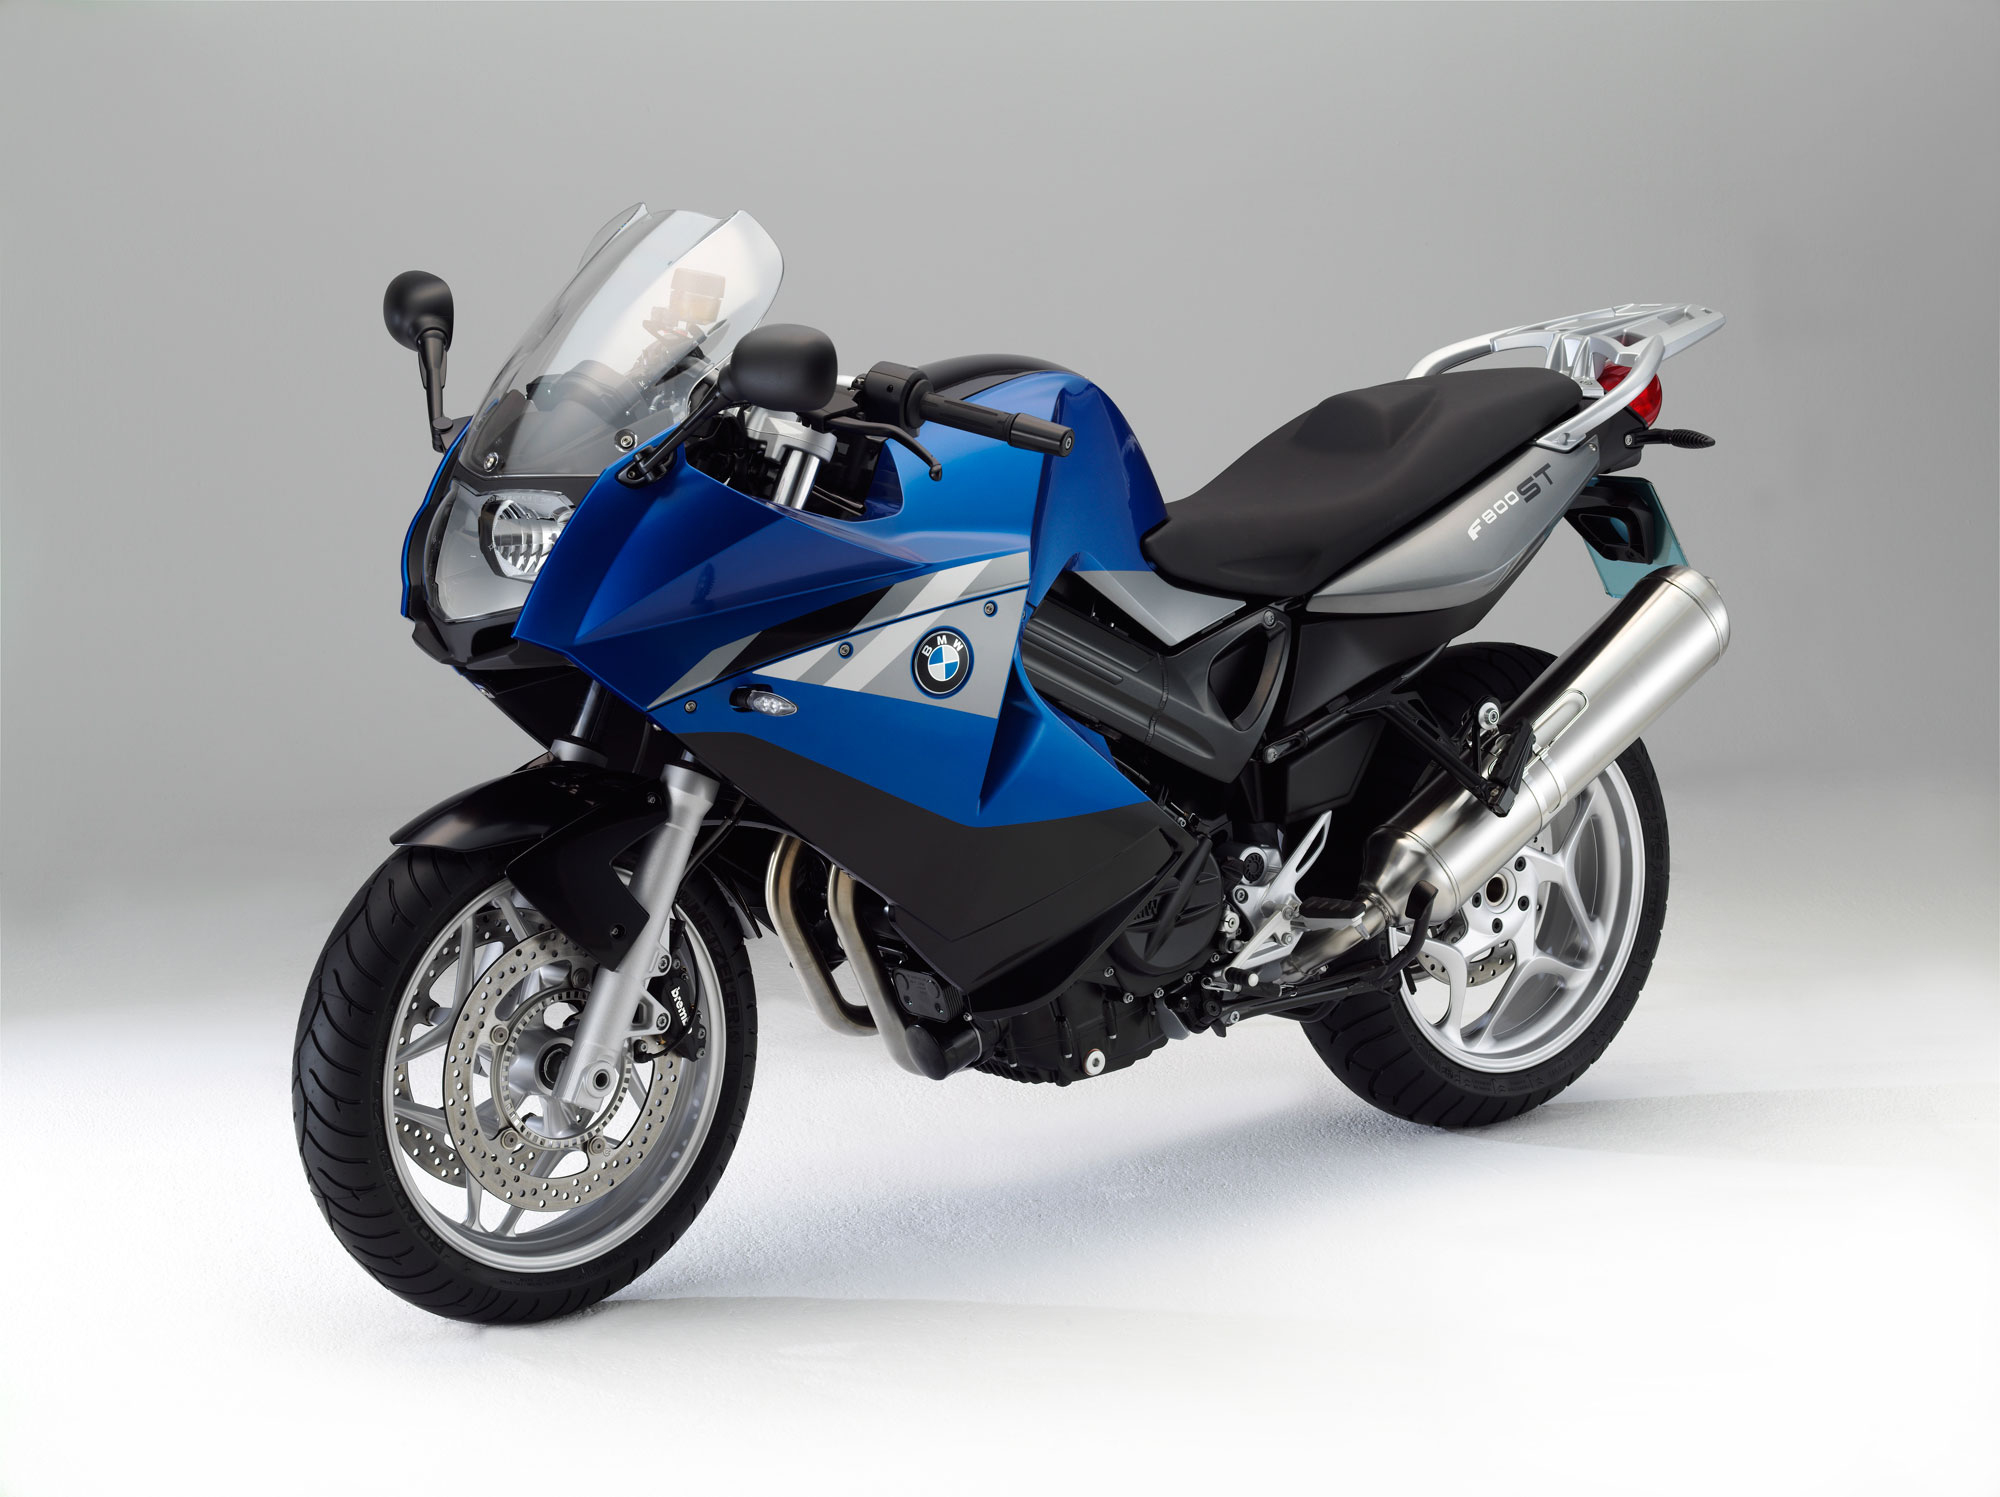 Bmw Xmoto 2007 Bmw G650 Xmoto Wallpaper Specifications Bmw G X 1050 Wallpaper Akrapovic Bmw